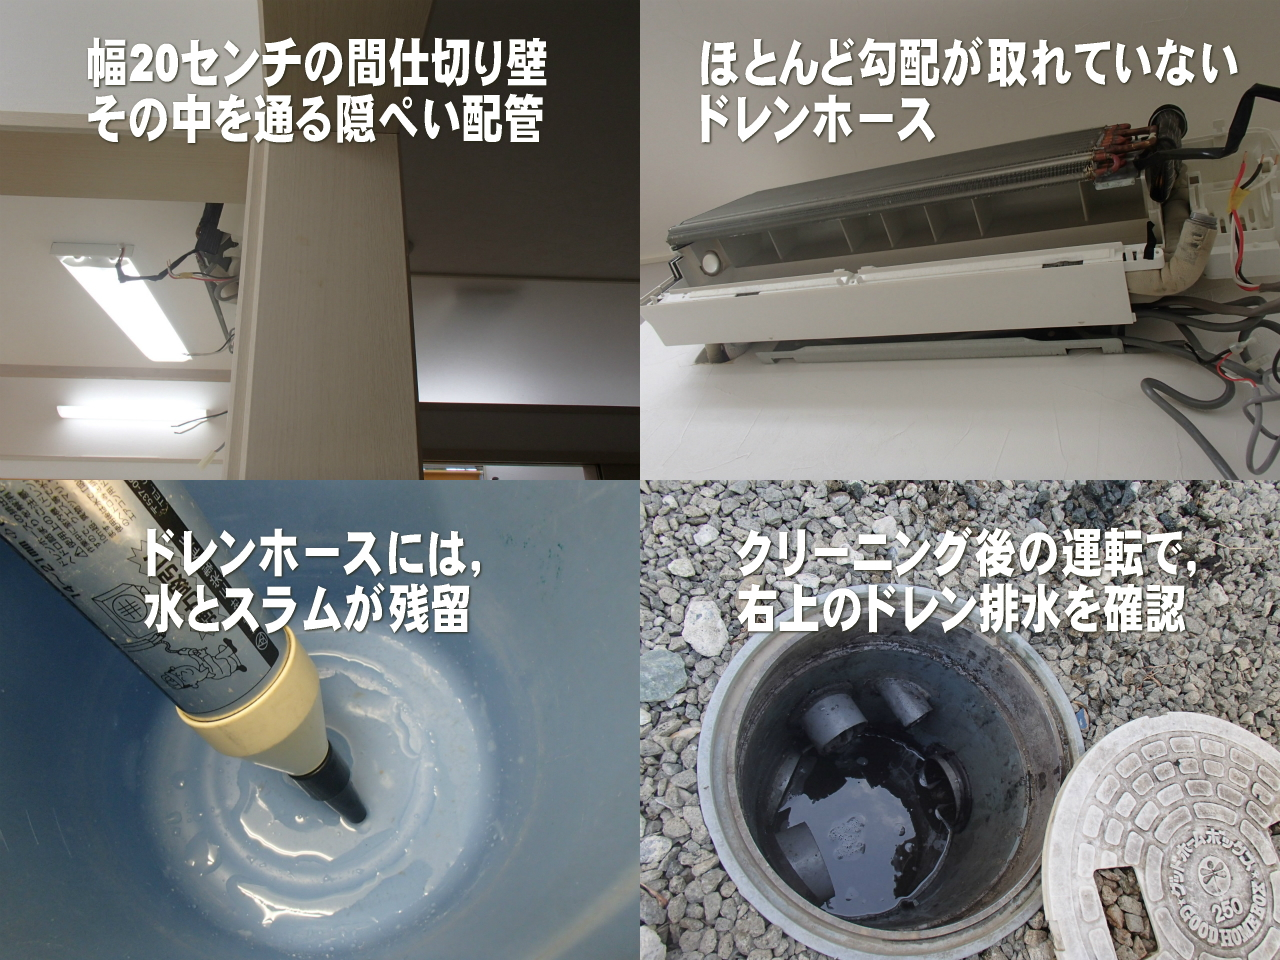 http://ajras.net/images/120927-aircon2.jpg